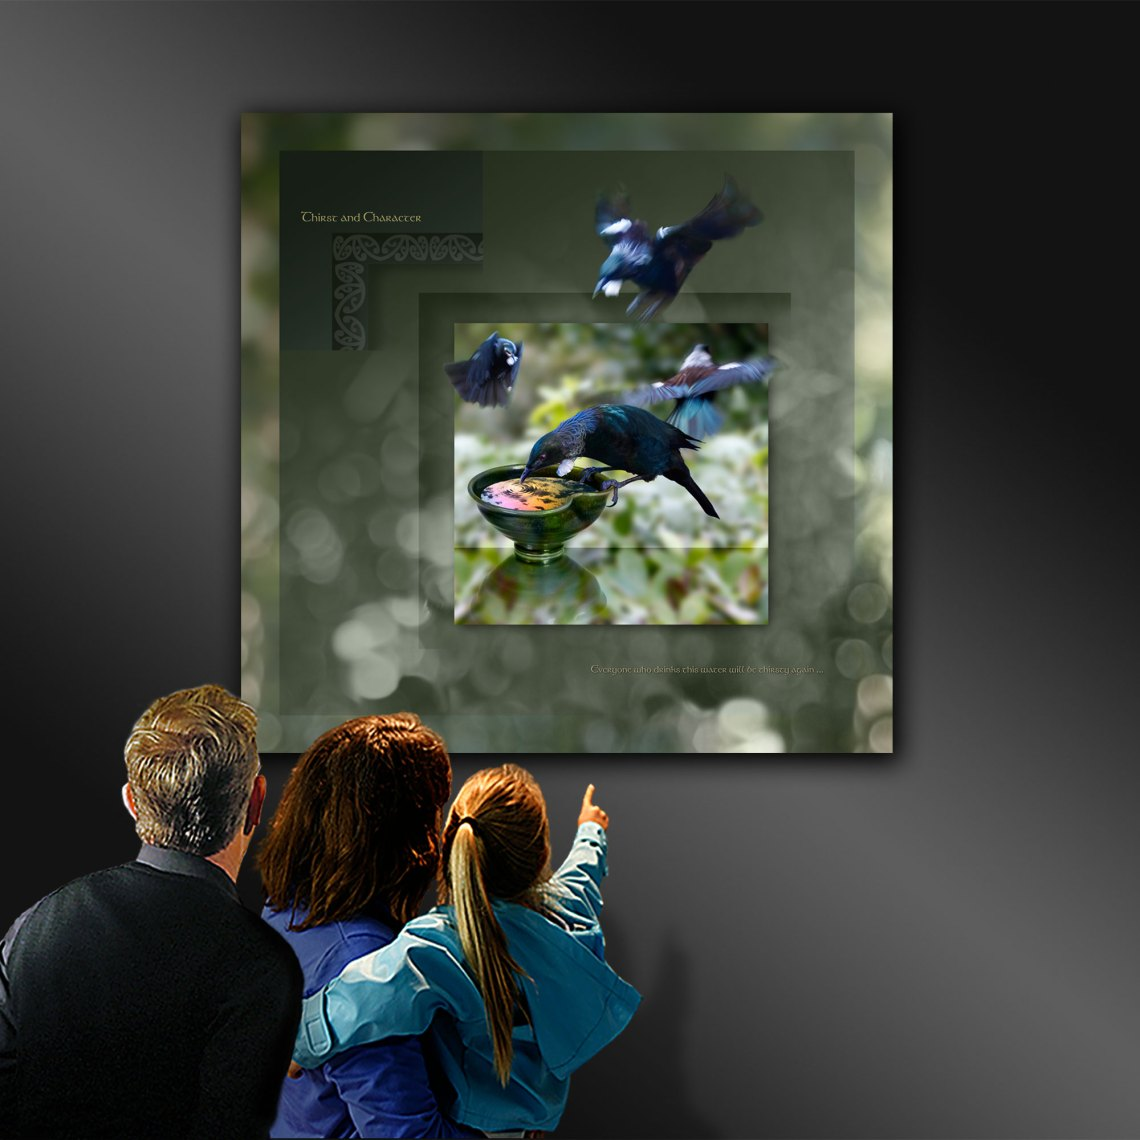 Digital photo artwork of the Tui bird, being viewed in an art gallery.